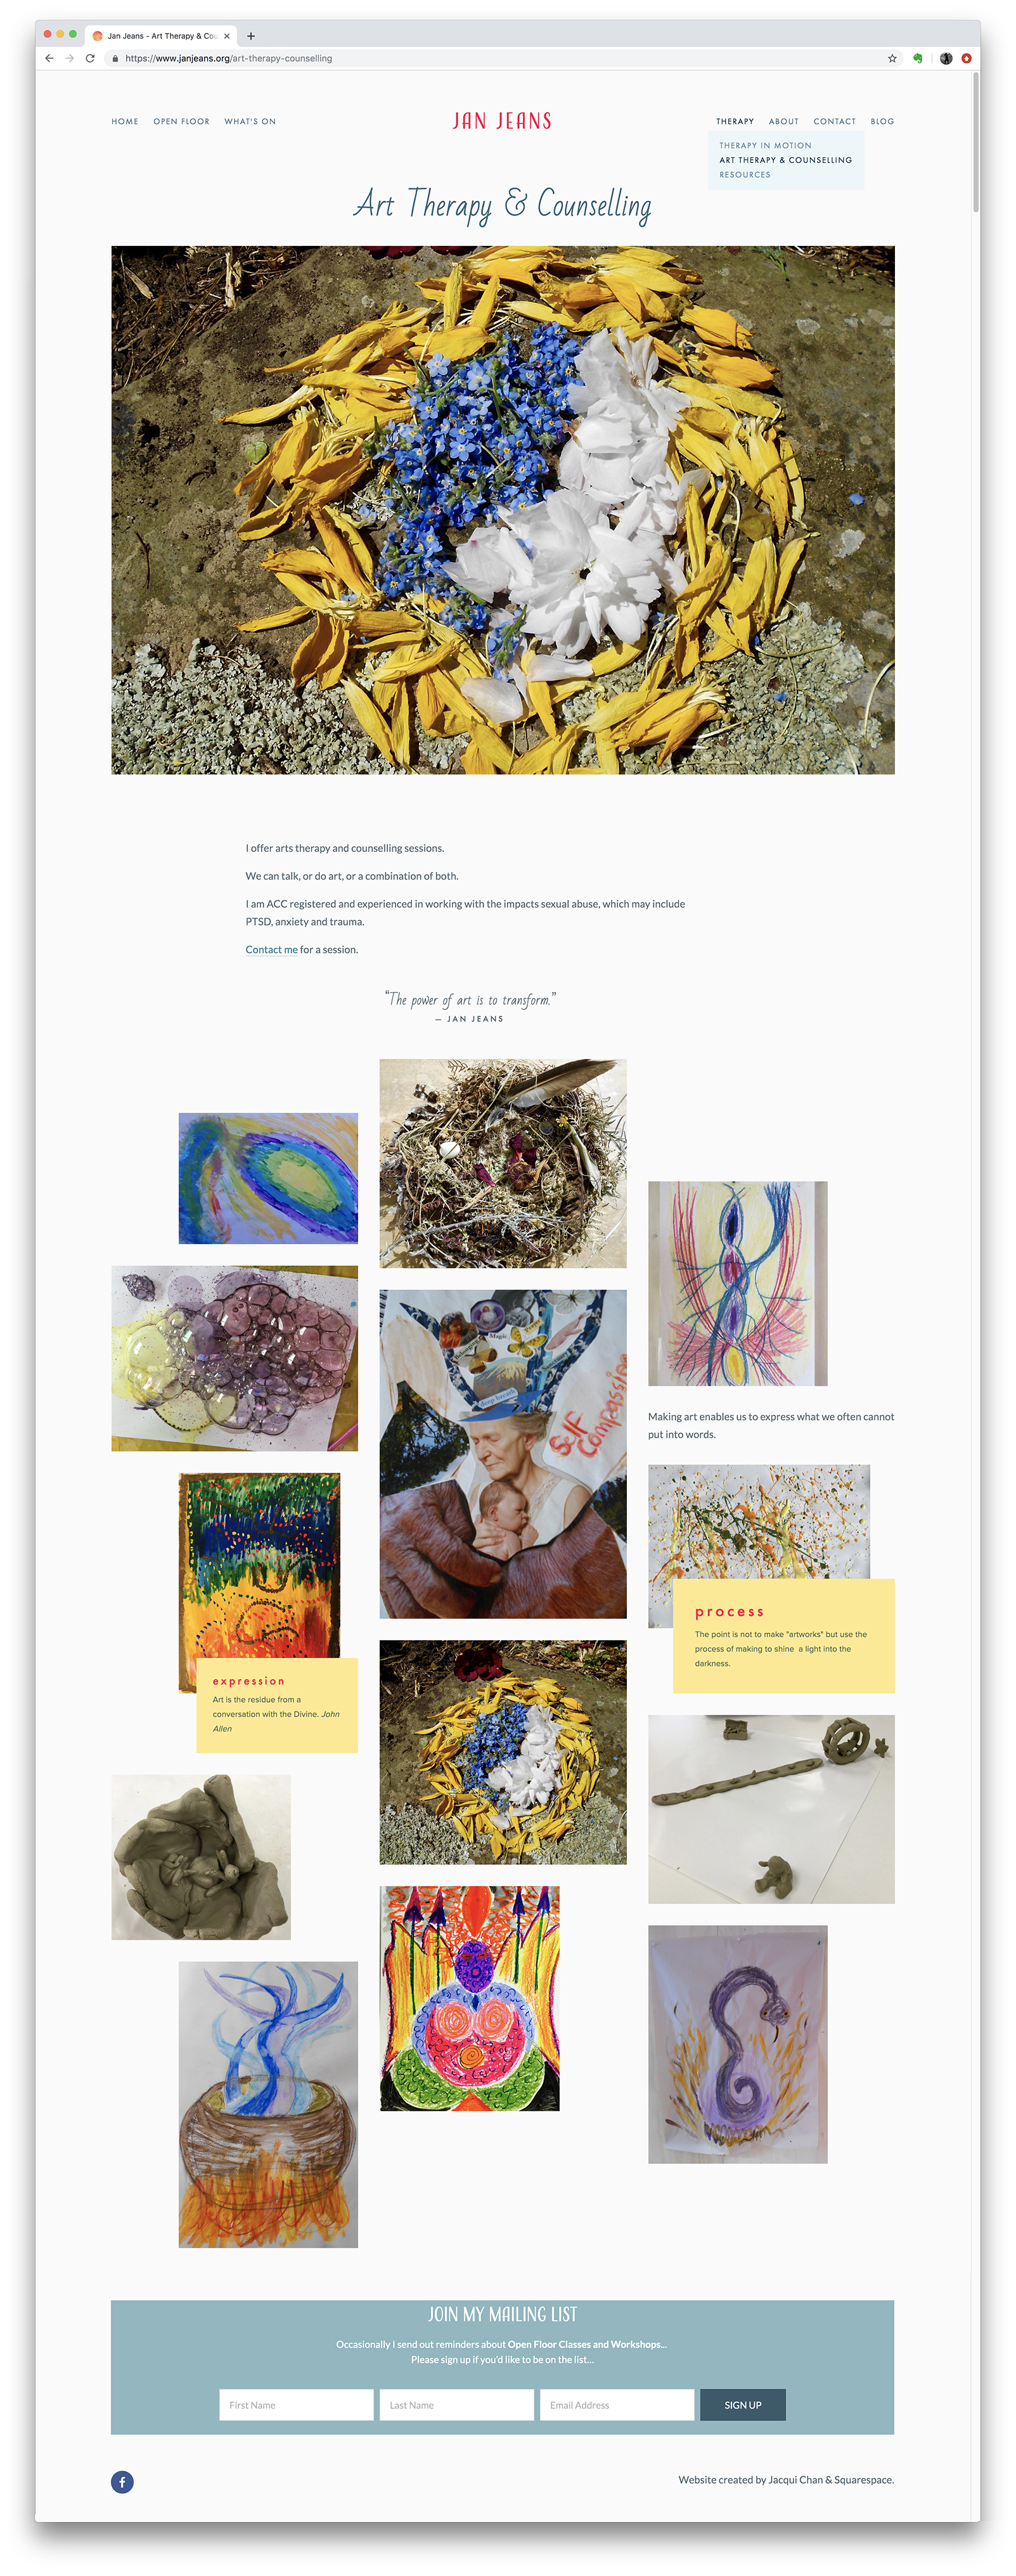 Art Therapy & Counselling Page